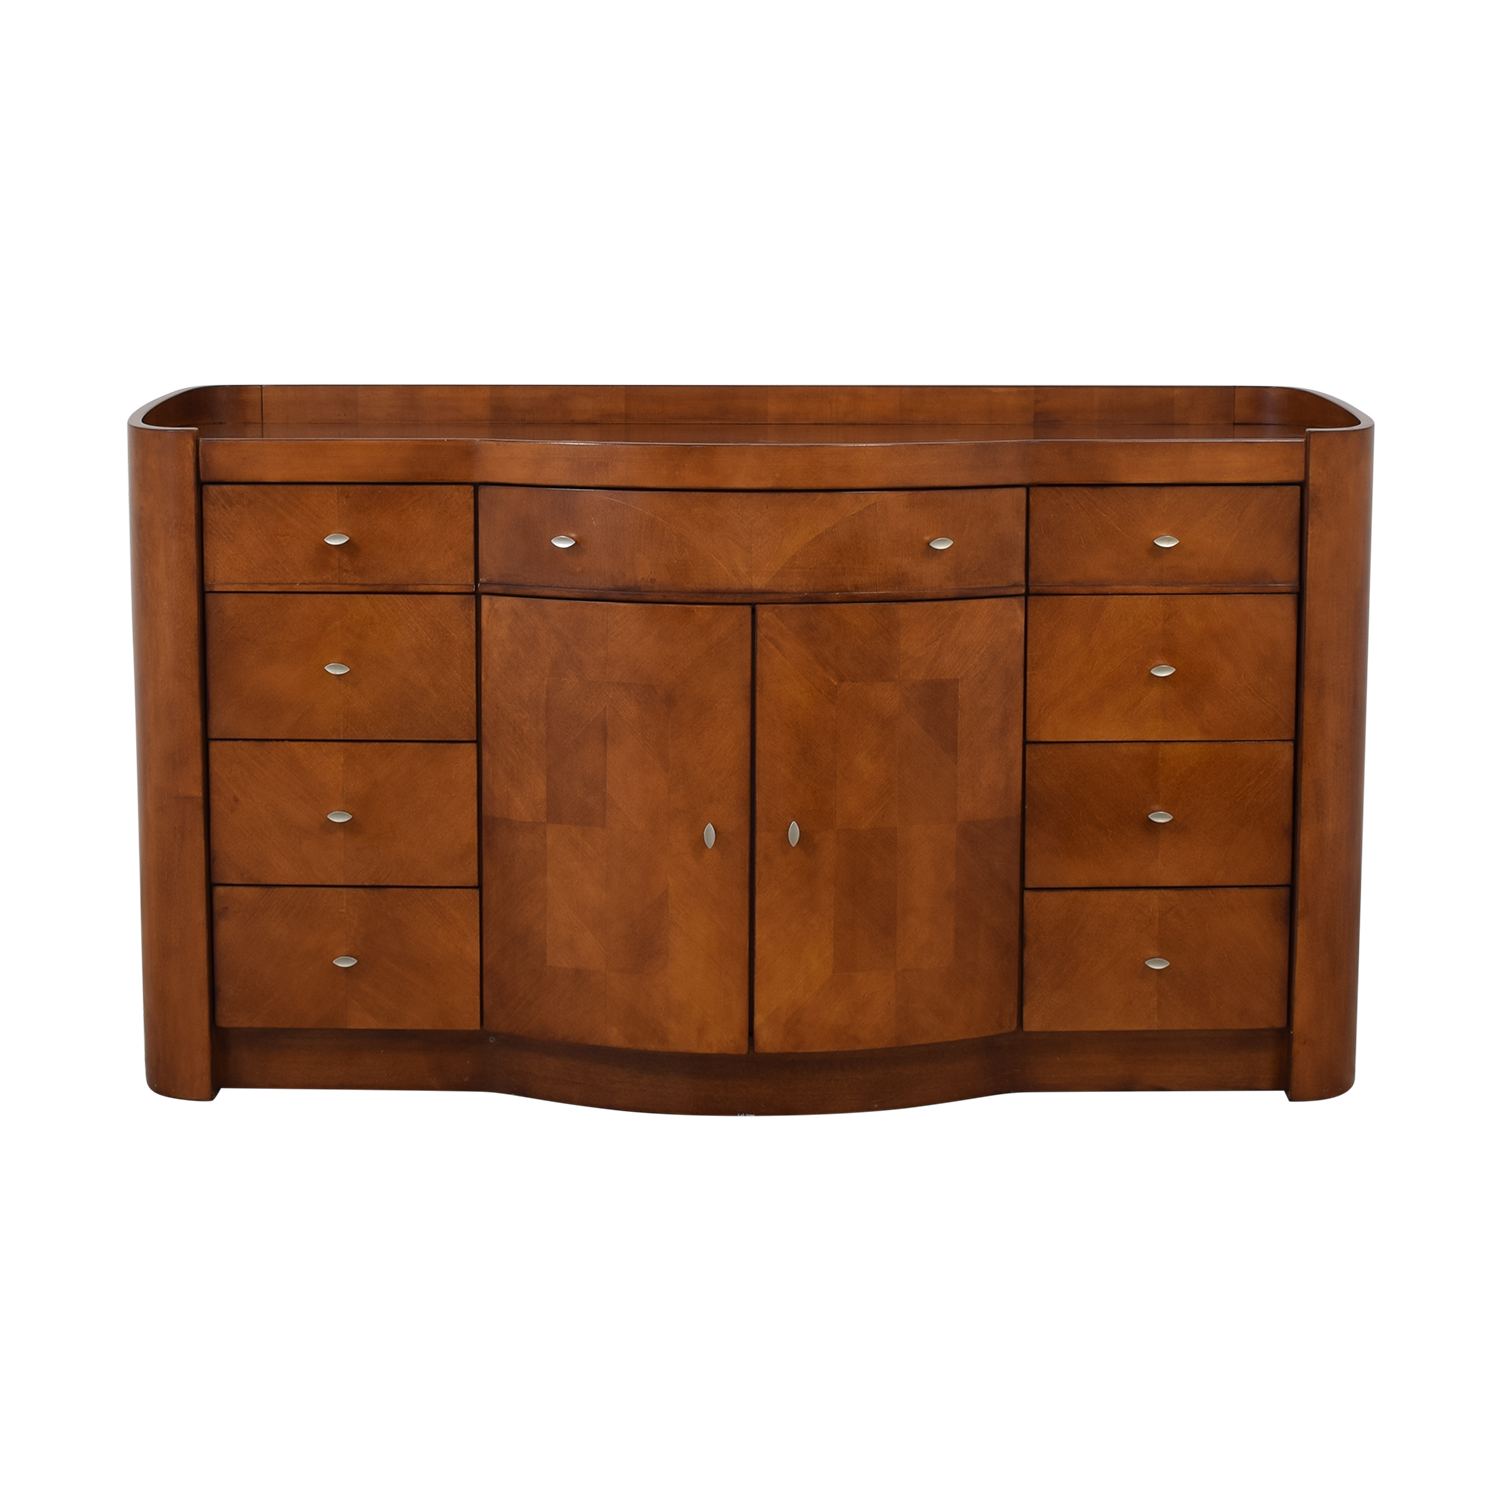 Raymour & Flanigan Raymour & Flanigan Teakwood Dresser for sale